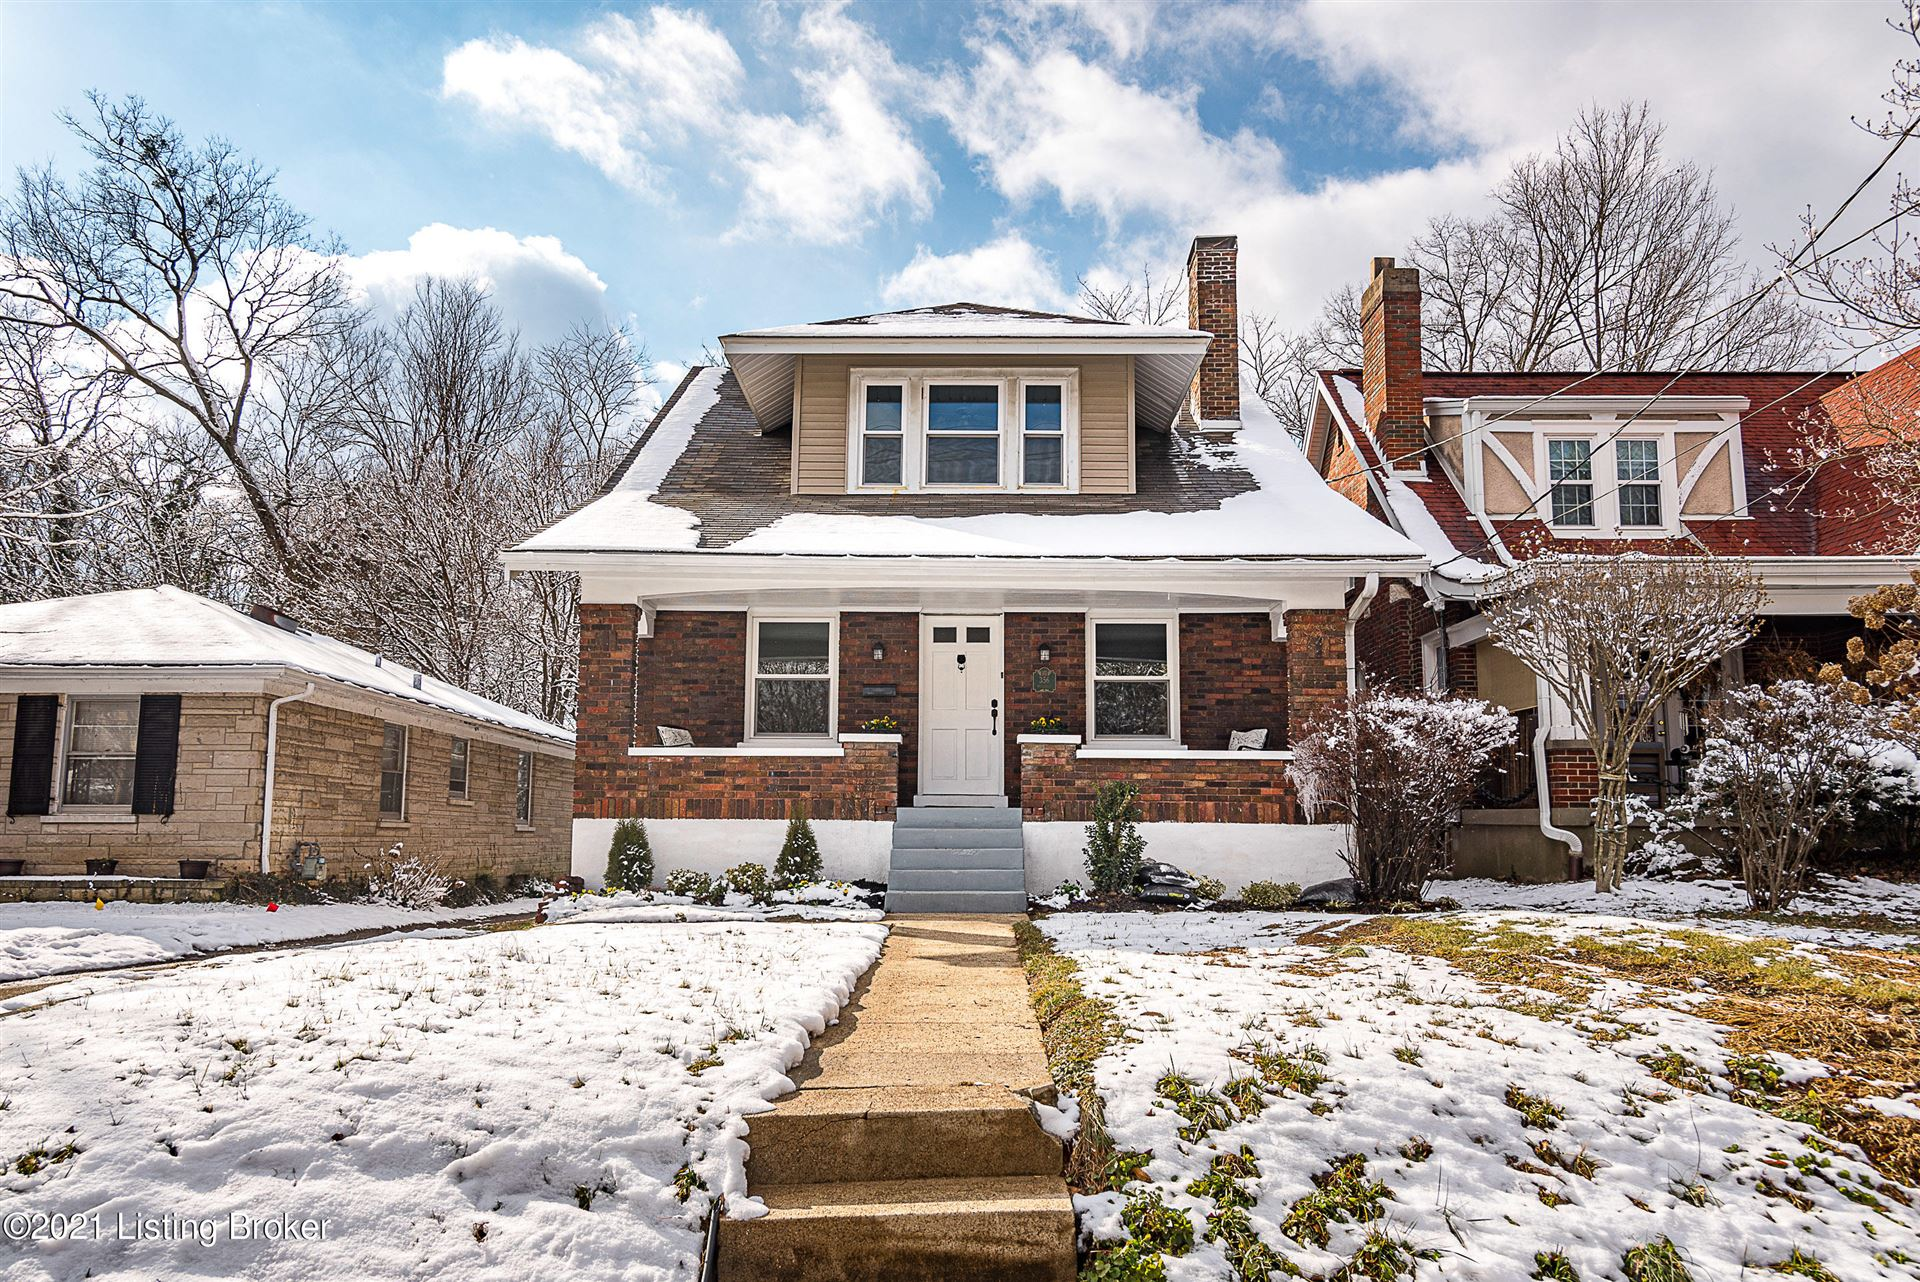 Photo for 356 Hillcrest Ave, Louisville, KY 40206 (MLS # 1578541)